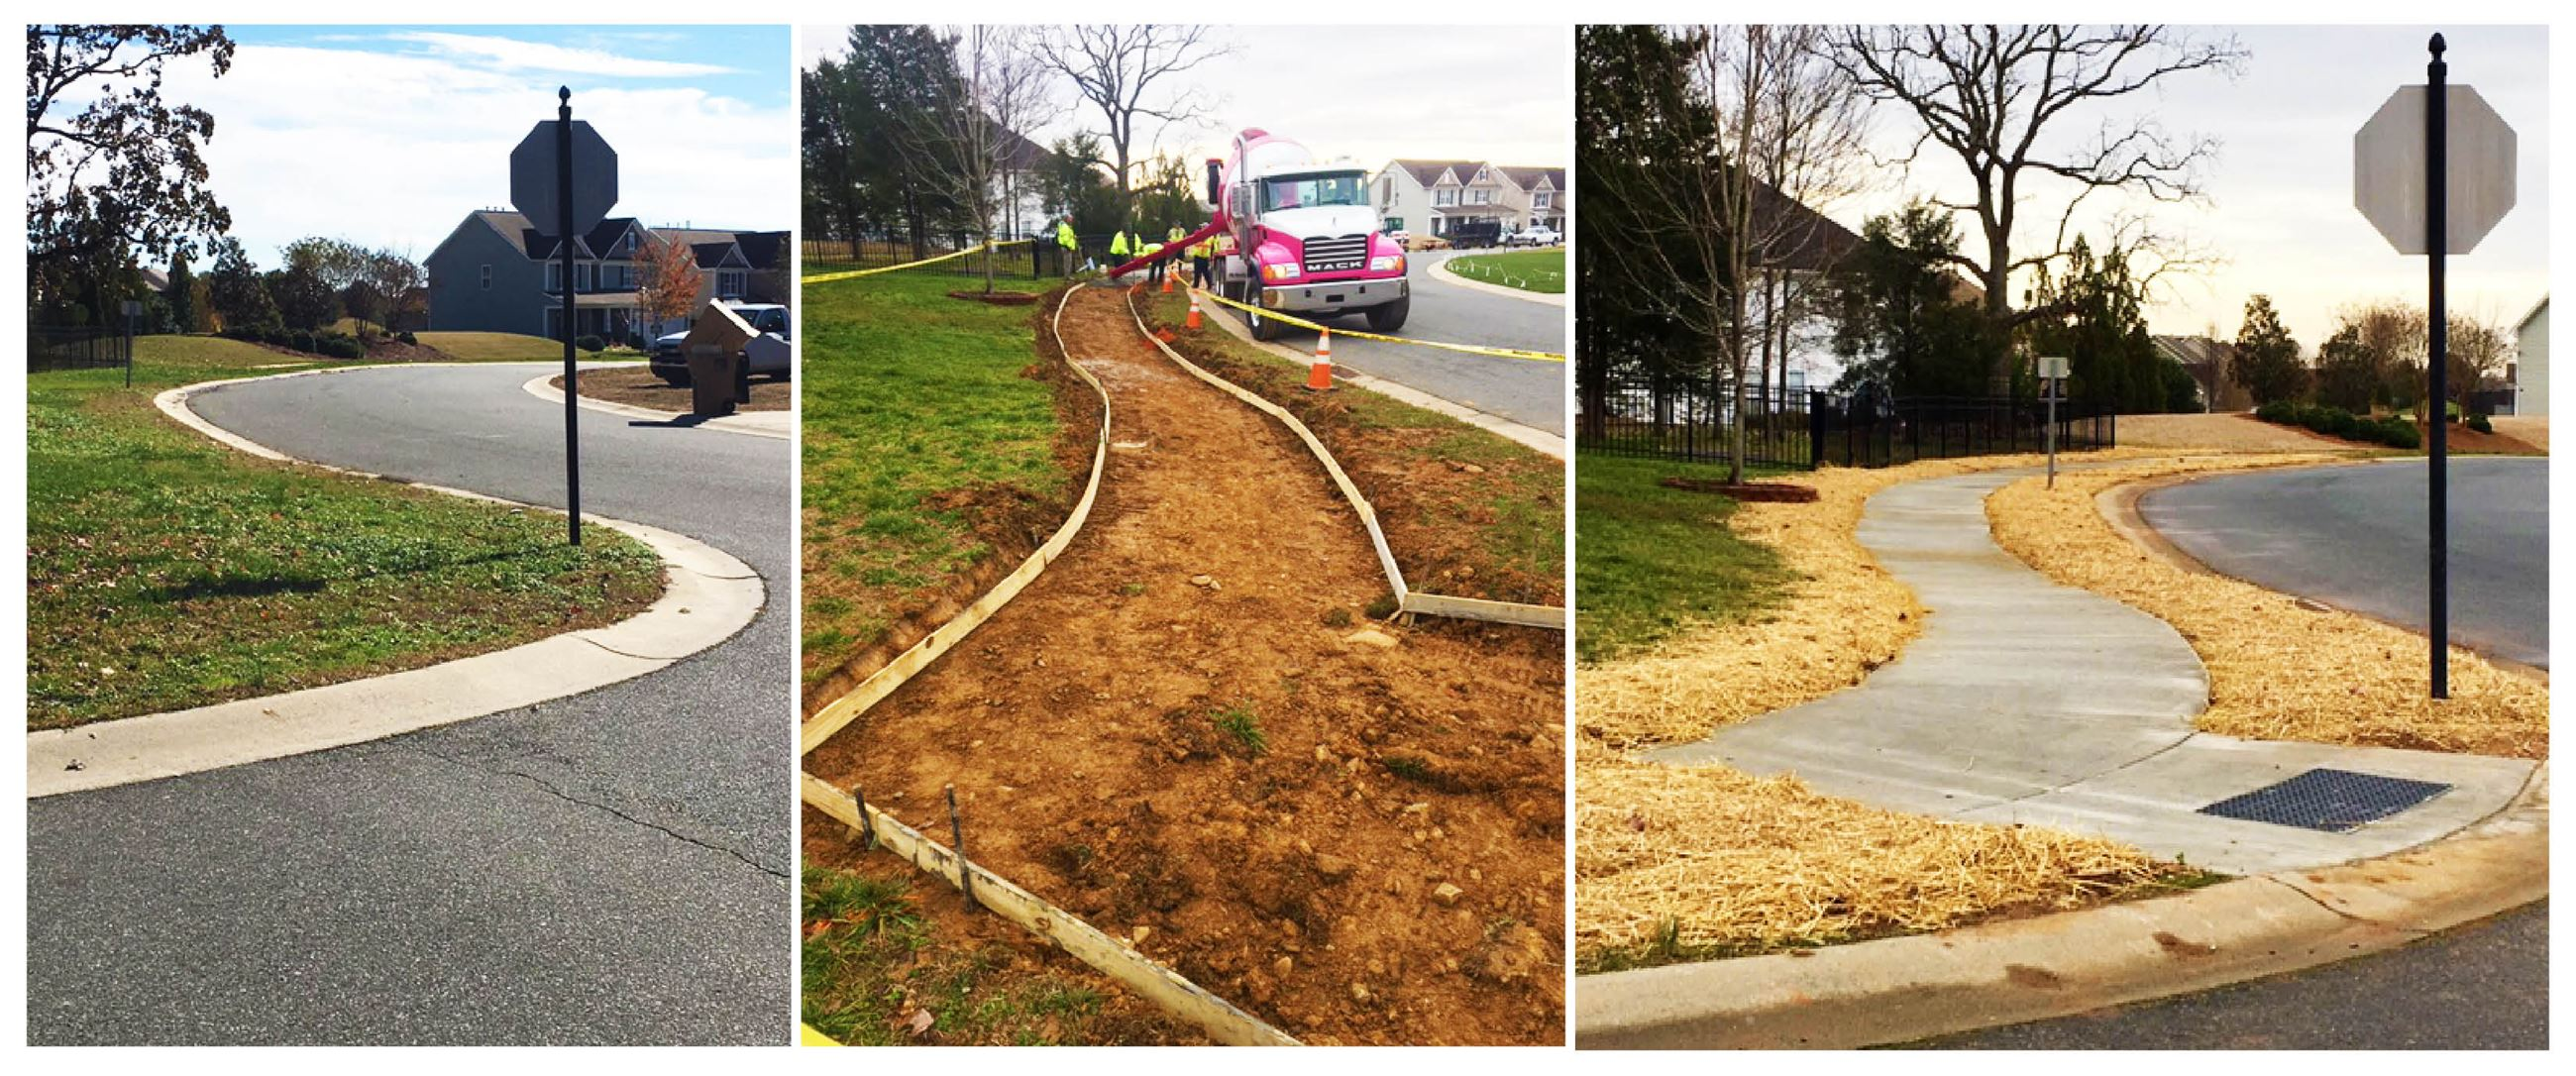 Sidewalk work progression image